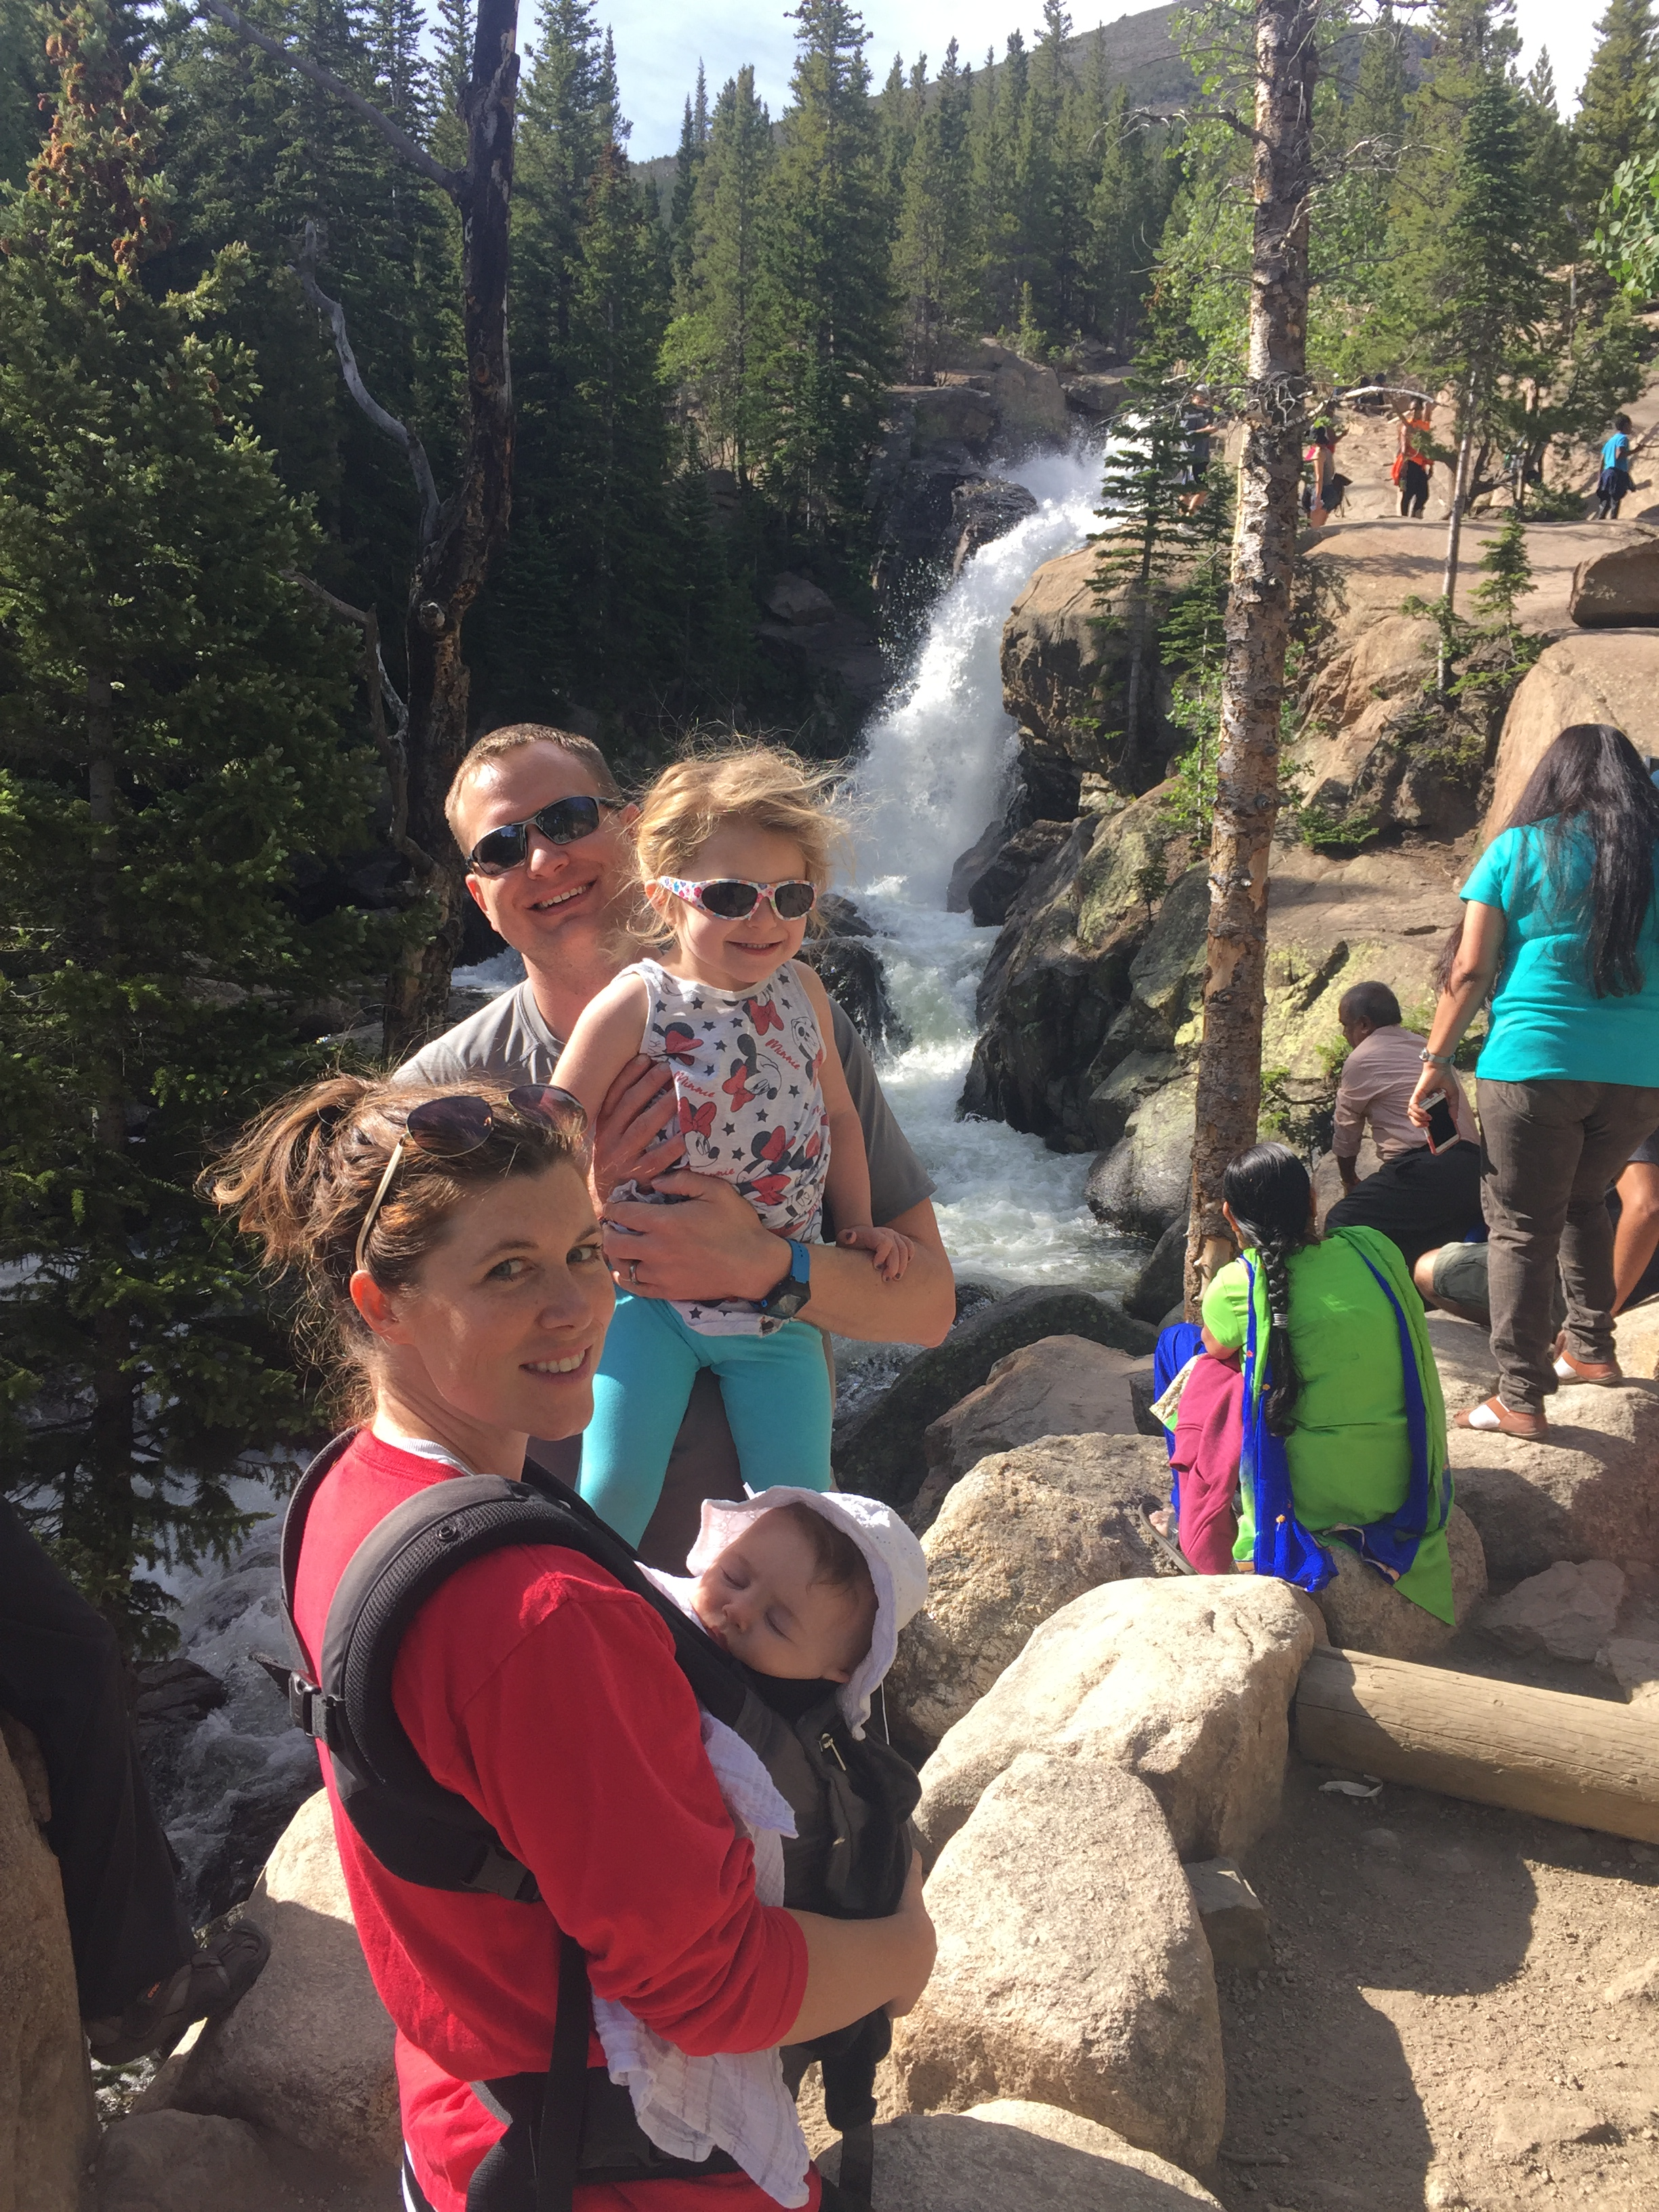 Alberta Falls is a popular destination in Rocky Mountain National Park